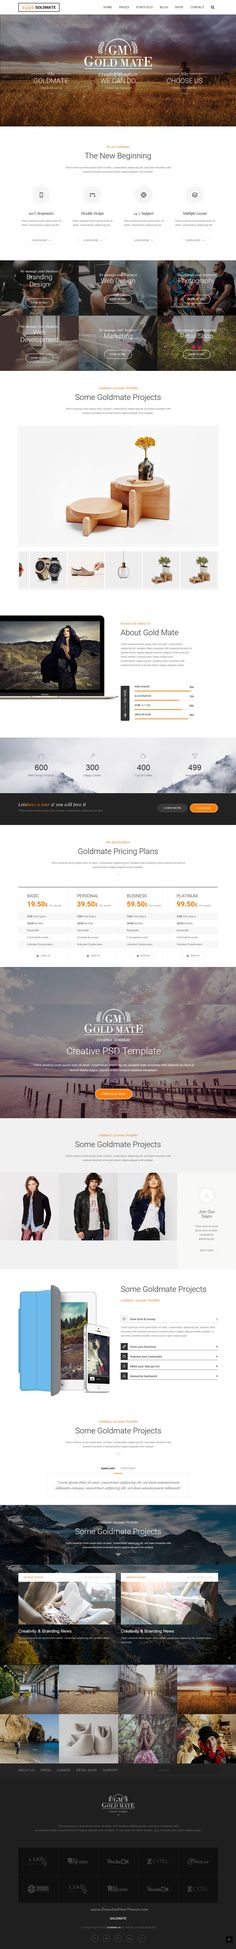 GoldMate is an creative #Bootstrap HTML Template for multipurpose #business #website with 7 stunning homepage layouts download now➯ https://themeforest.net/item/goldmate-creative-multipurpose-html-template/16653599?ref=Datasata